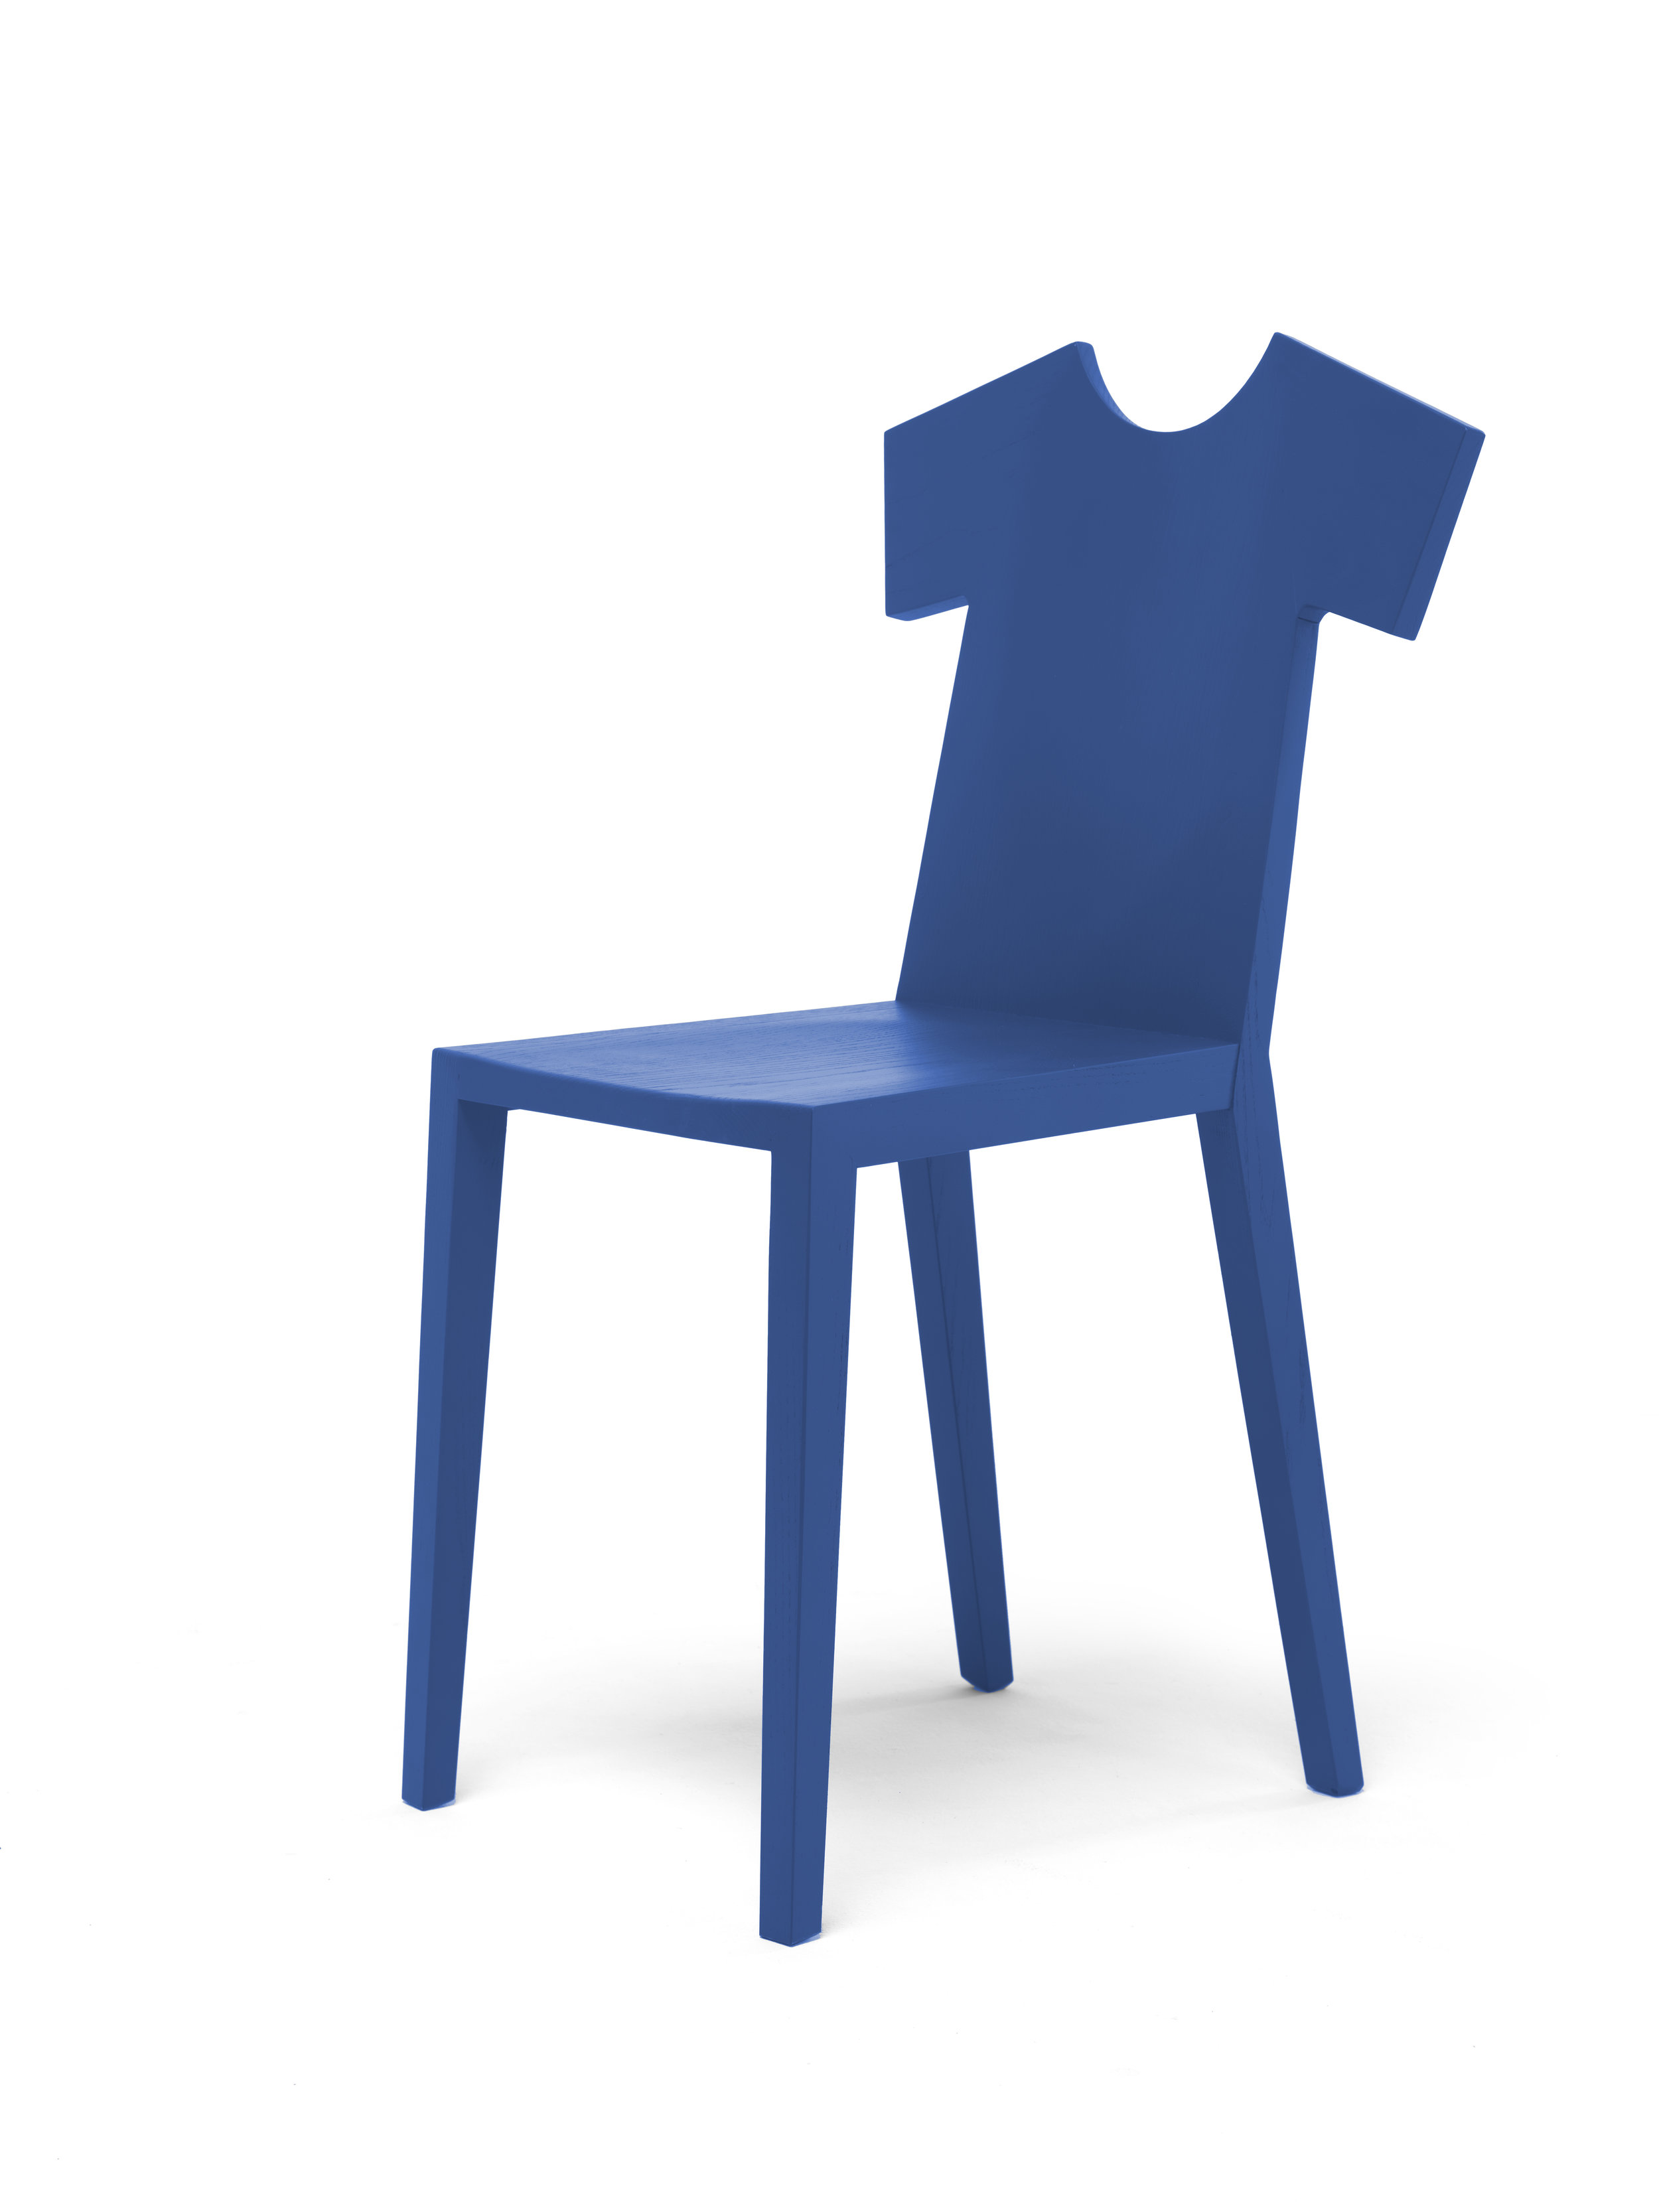 T-chair in blue.jpg